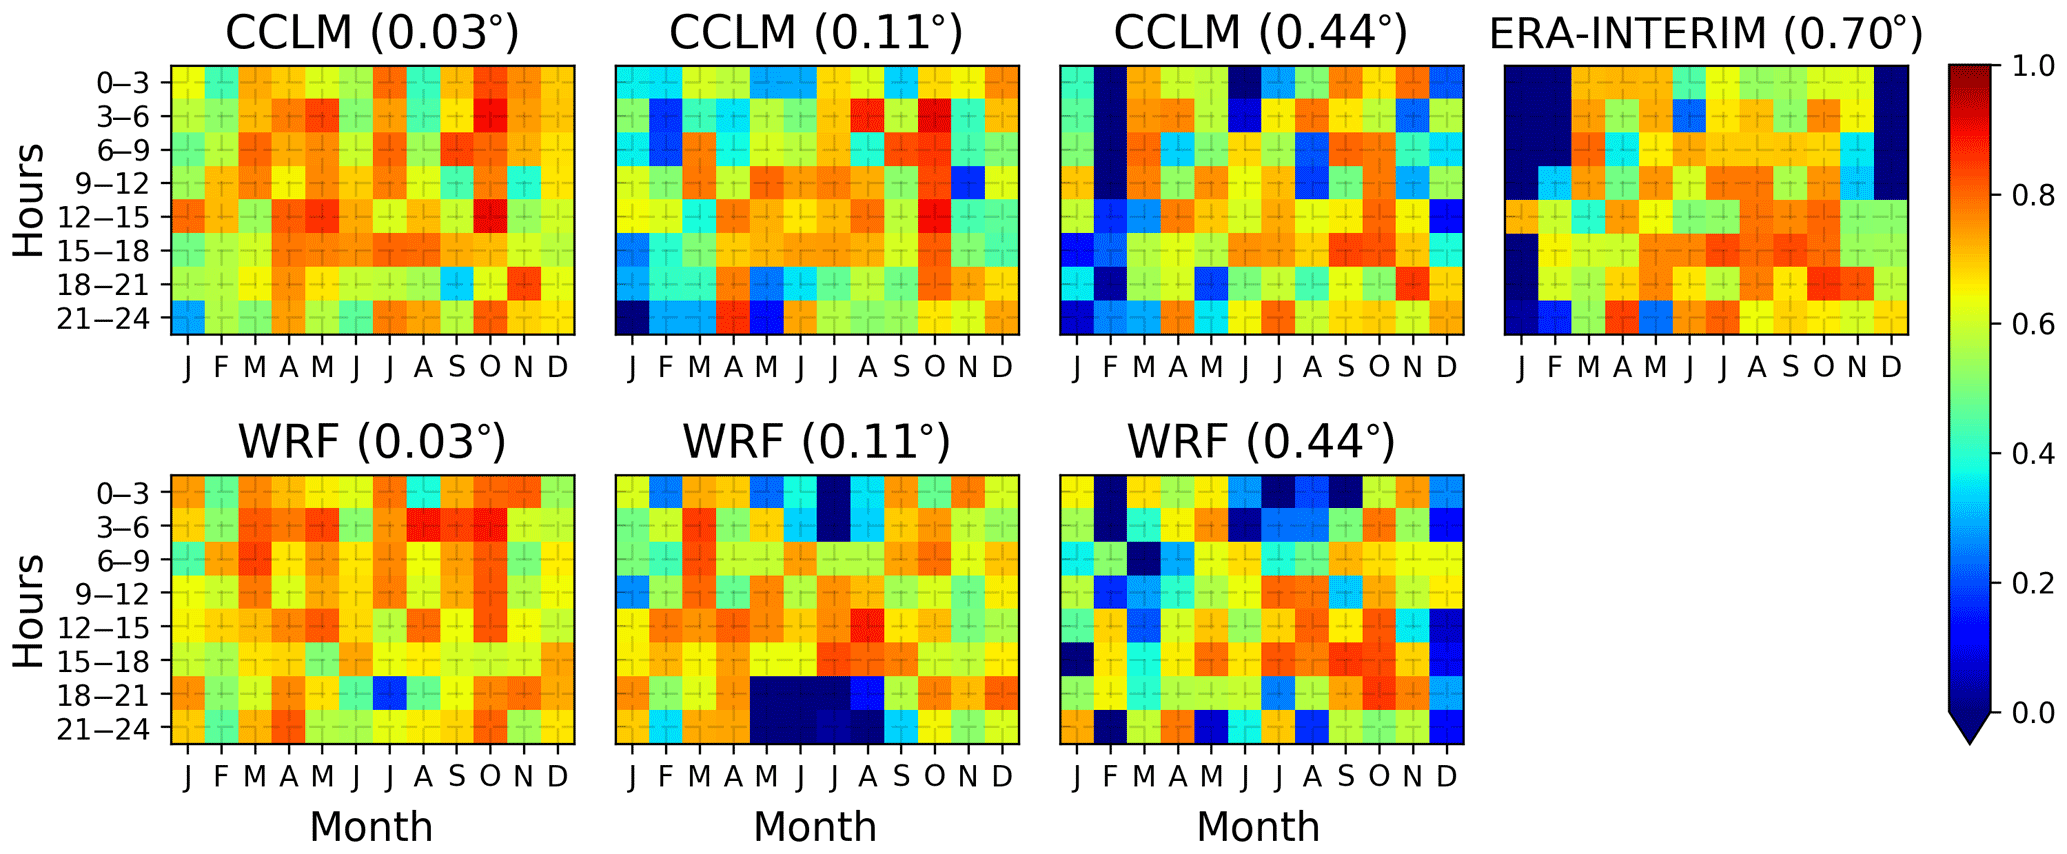 NHESS - Convection-permitting regional climate simulations